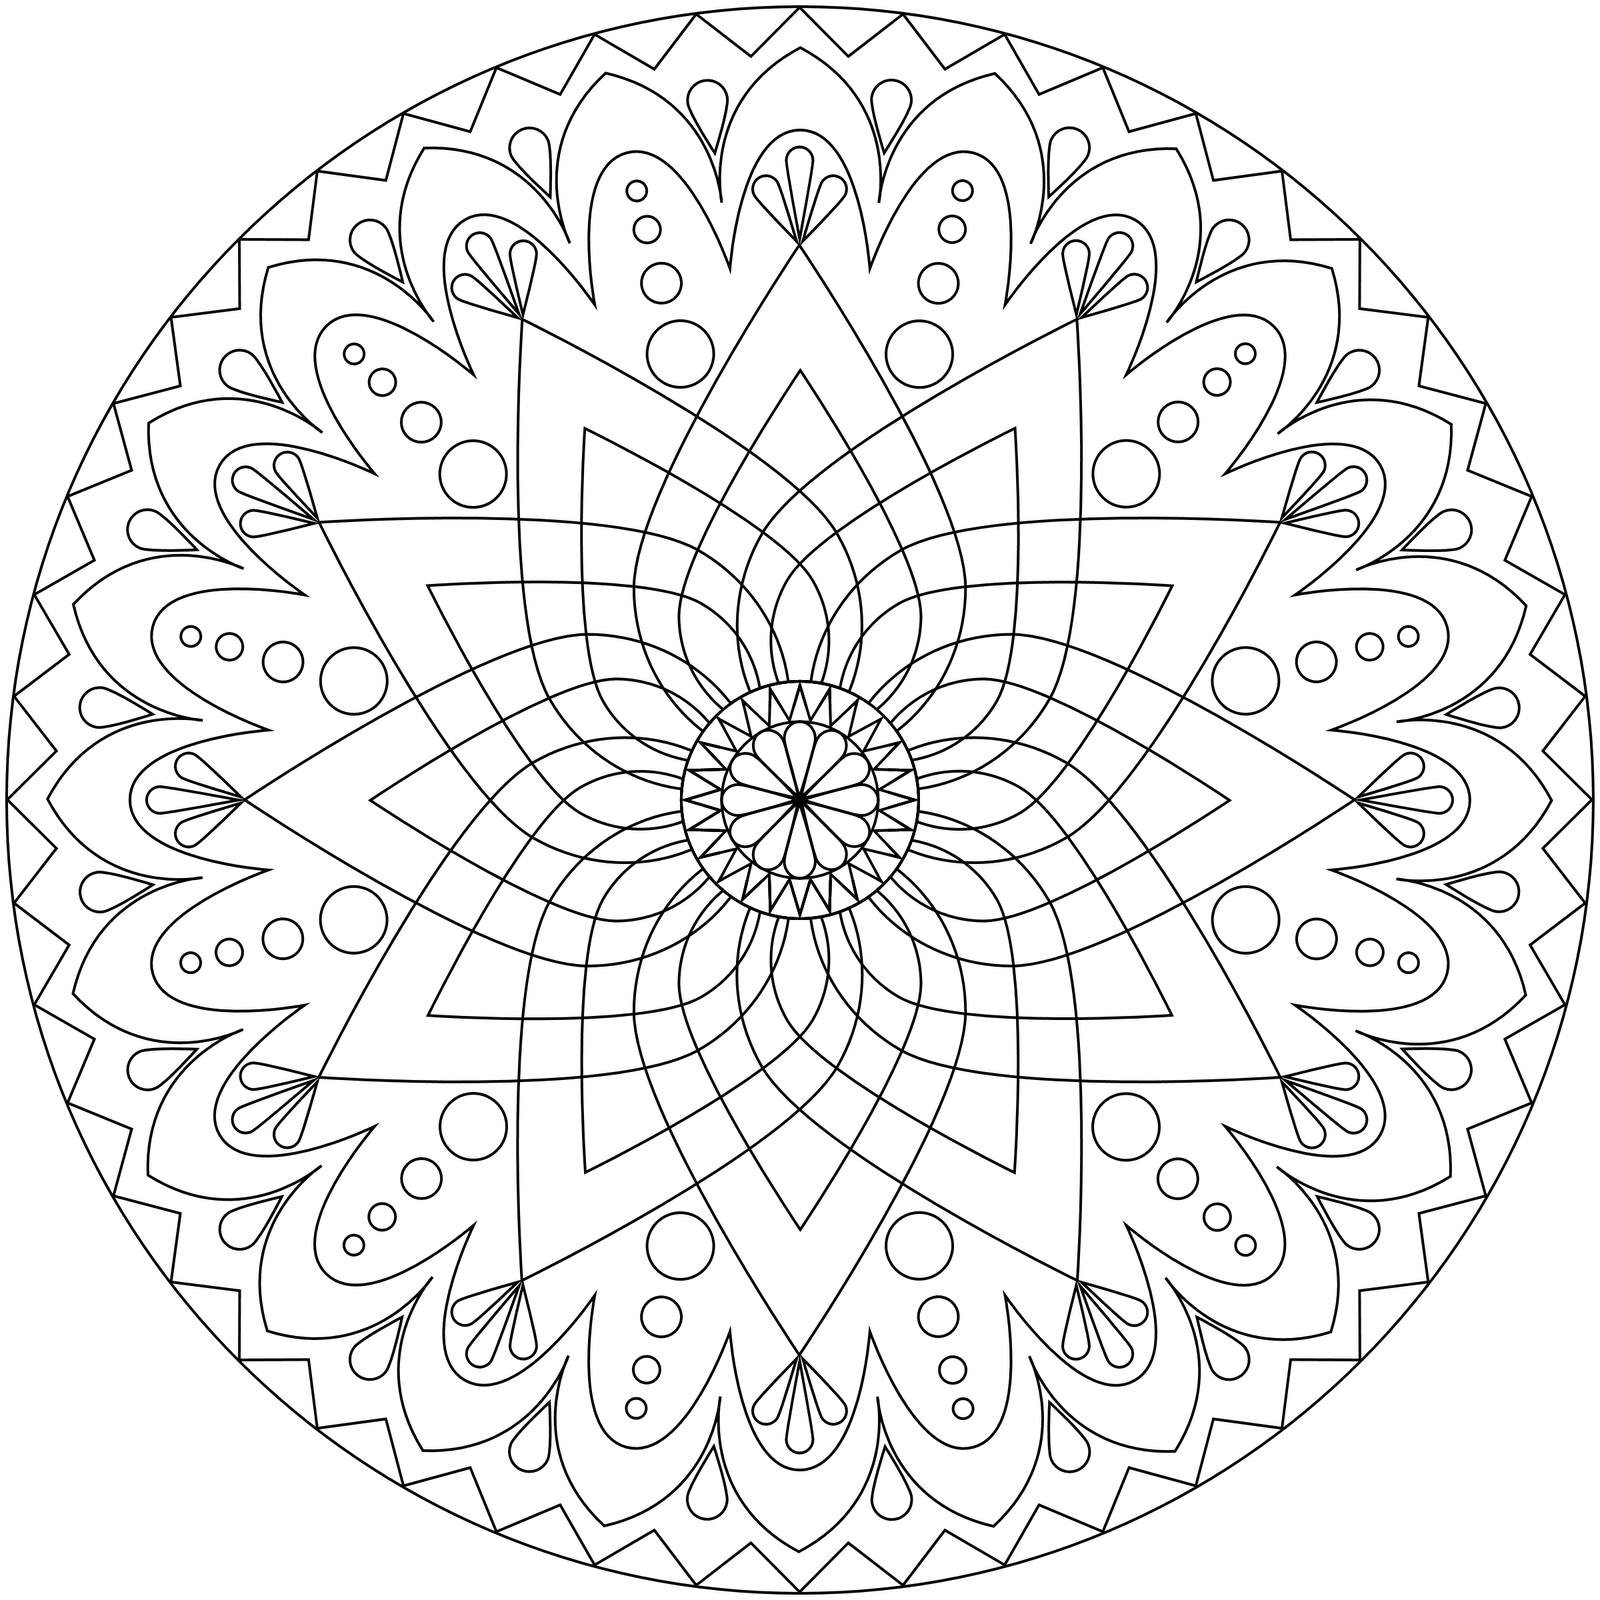 Stress relief coloring pages mandala - Download